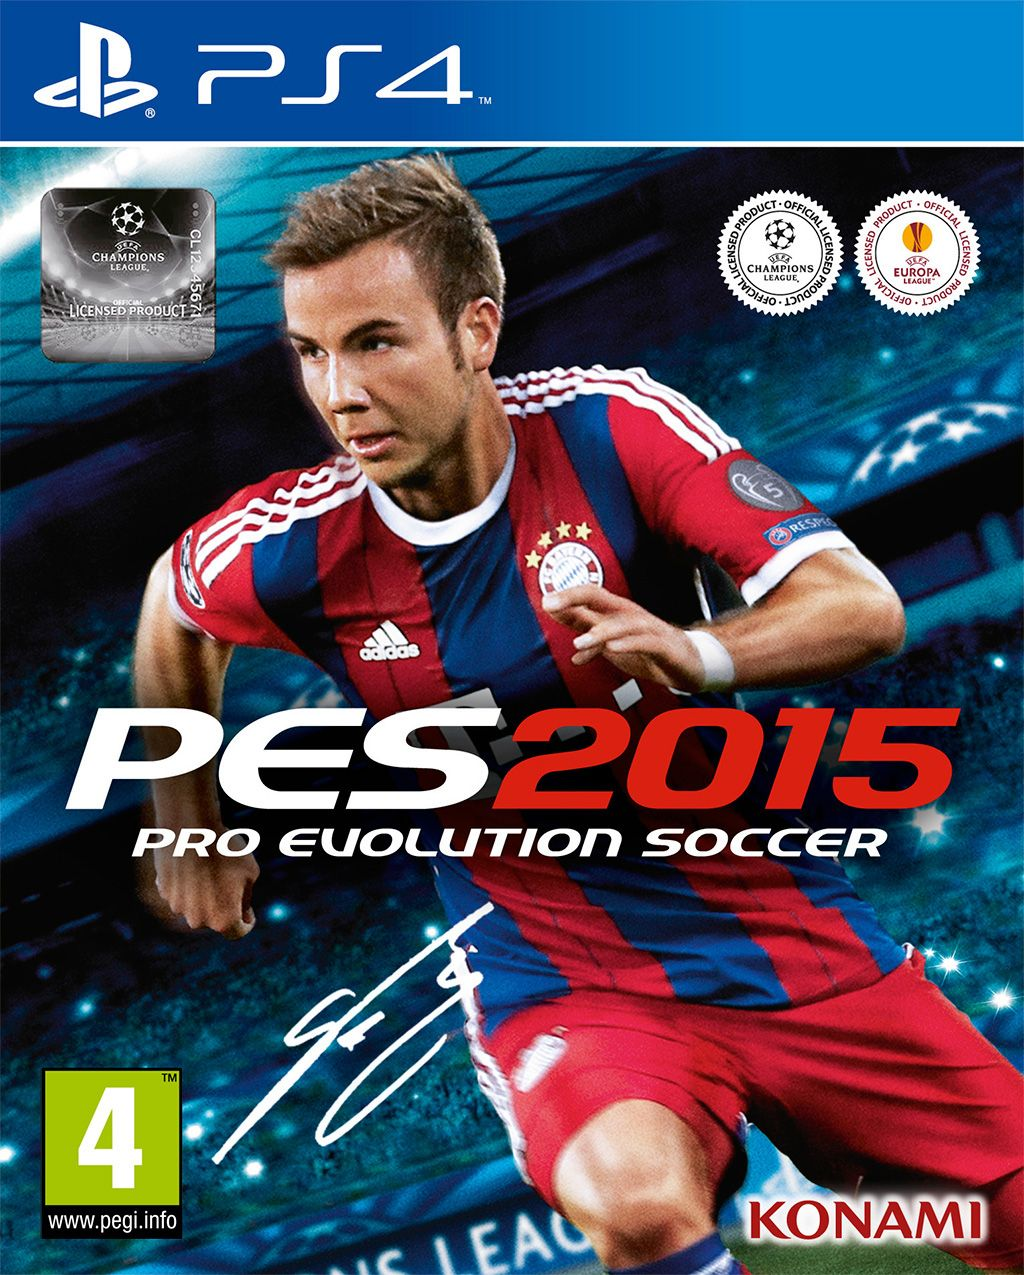 pes-2015-box-art-ps4_1024-0